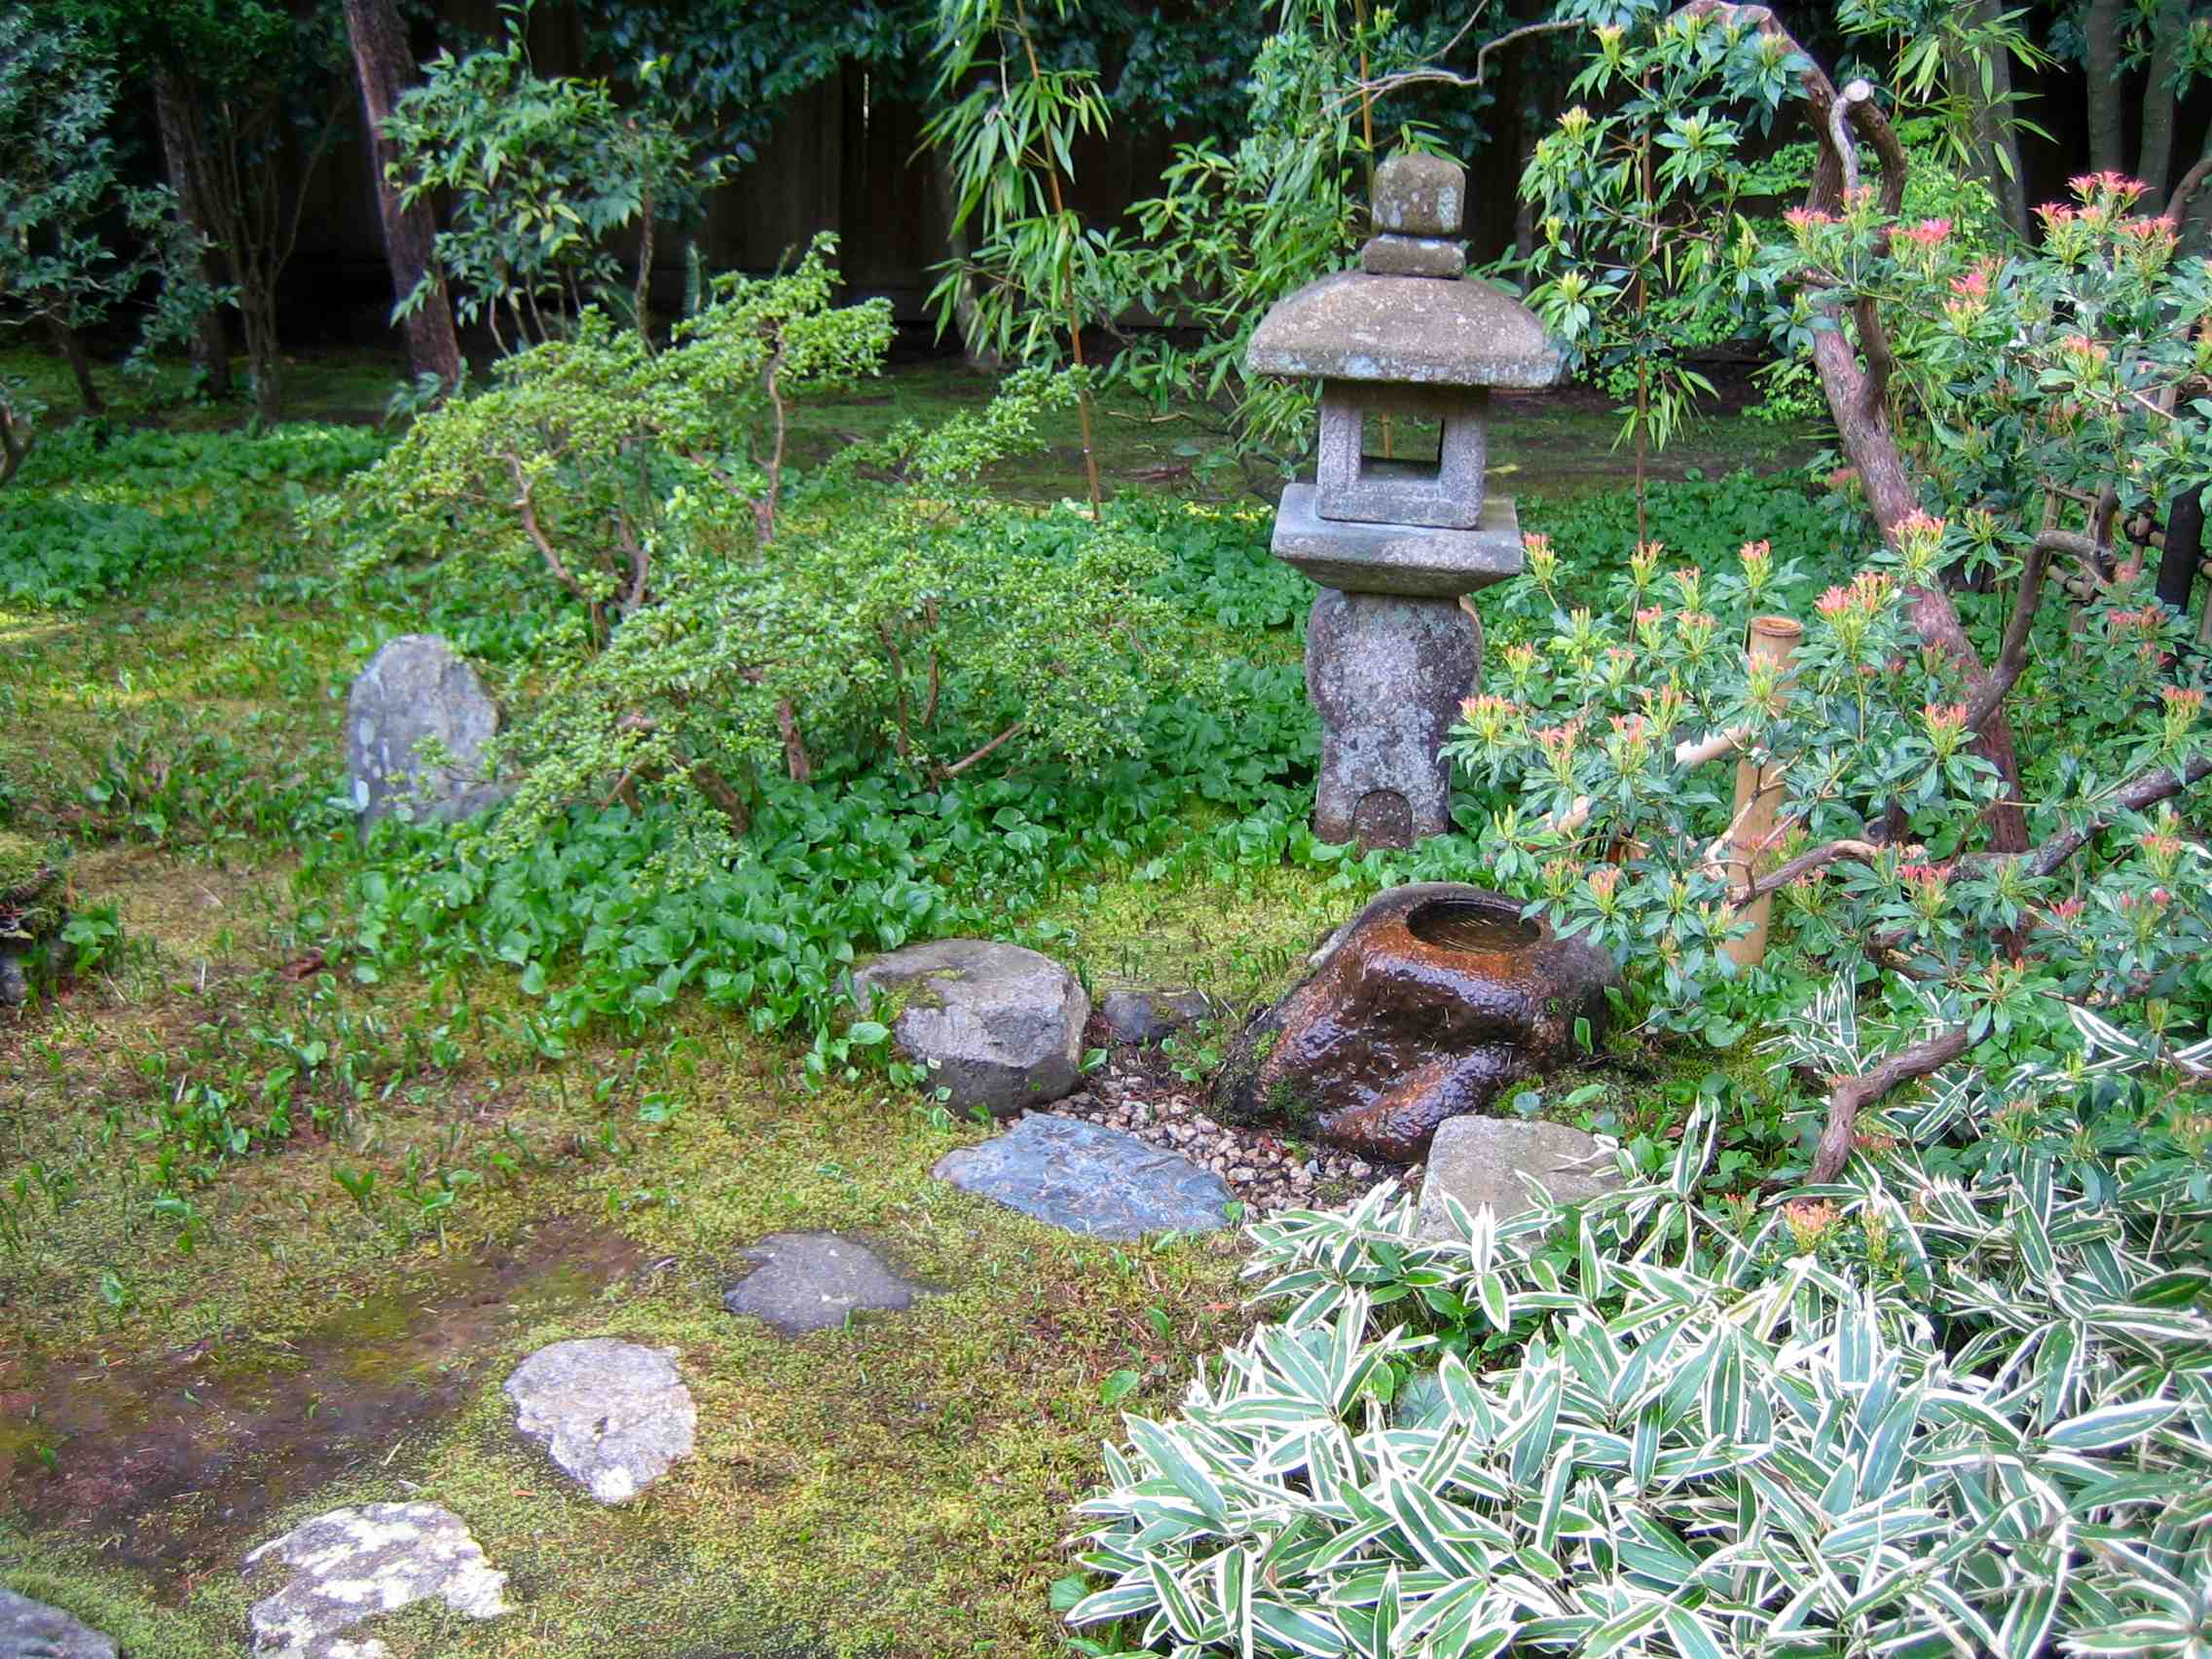 A landscape s story the nitobe memorial garden ekostories for Japanese stone garden